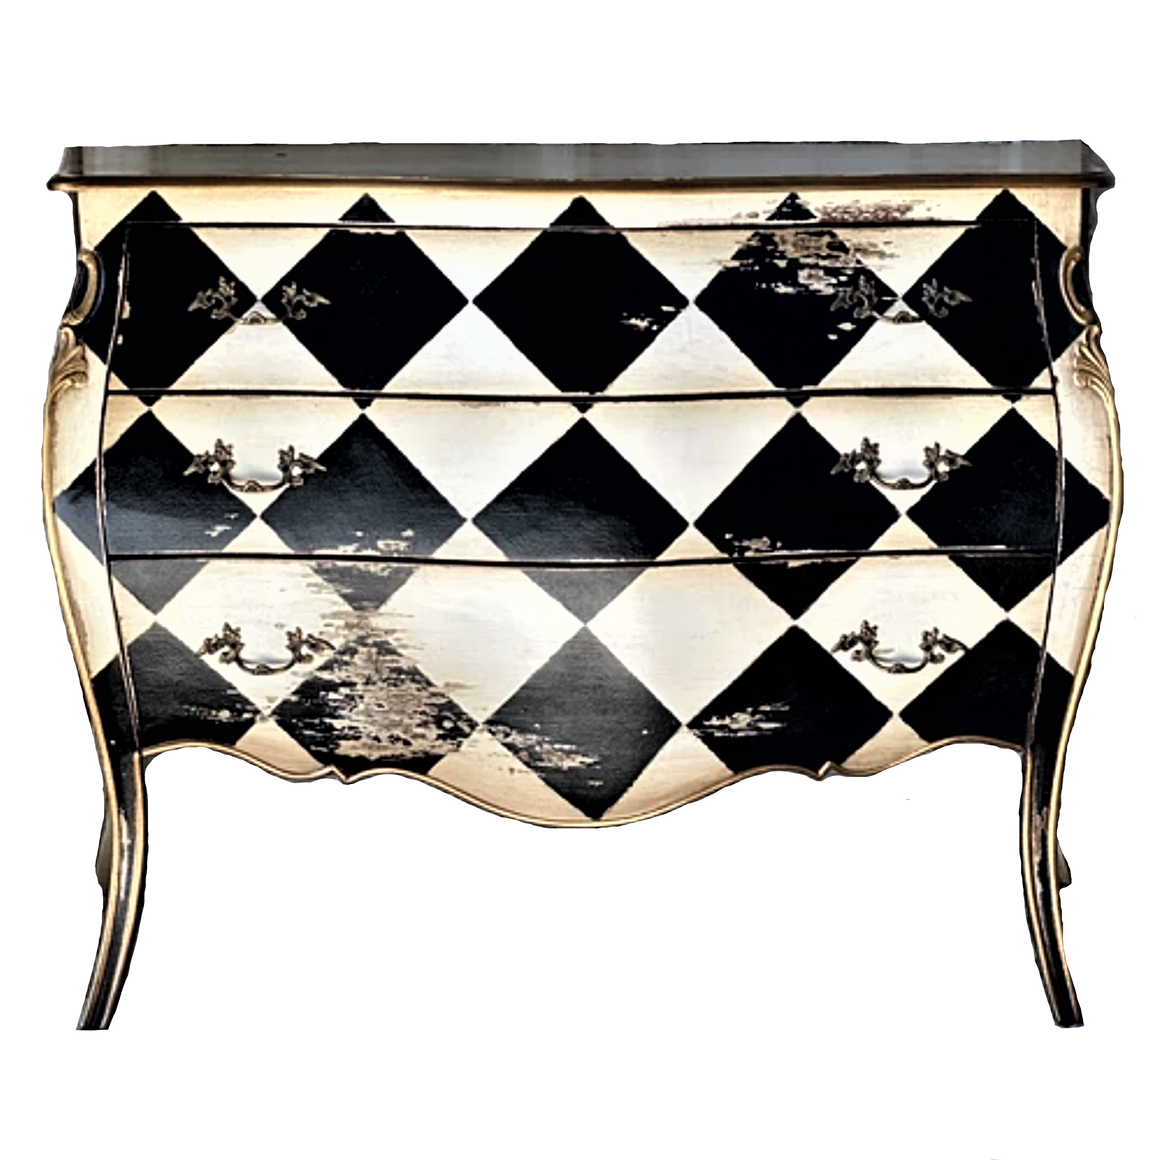 FRENCH 1920'S VINTAGE STYLE HARLEQUIN COMMODE